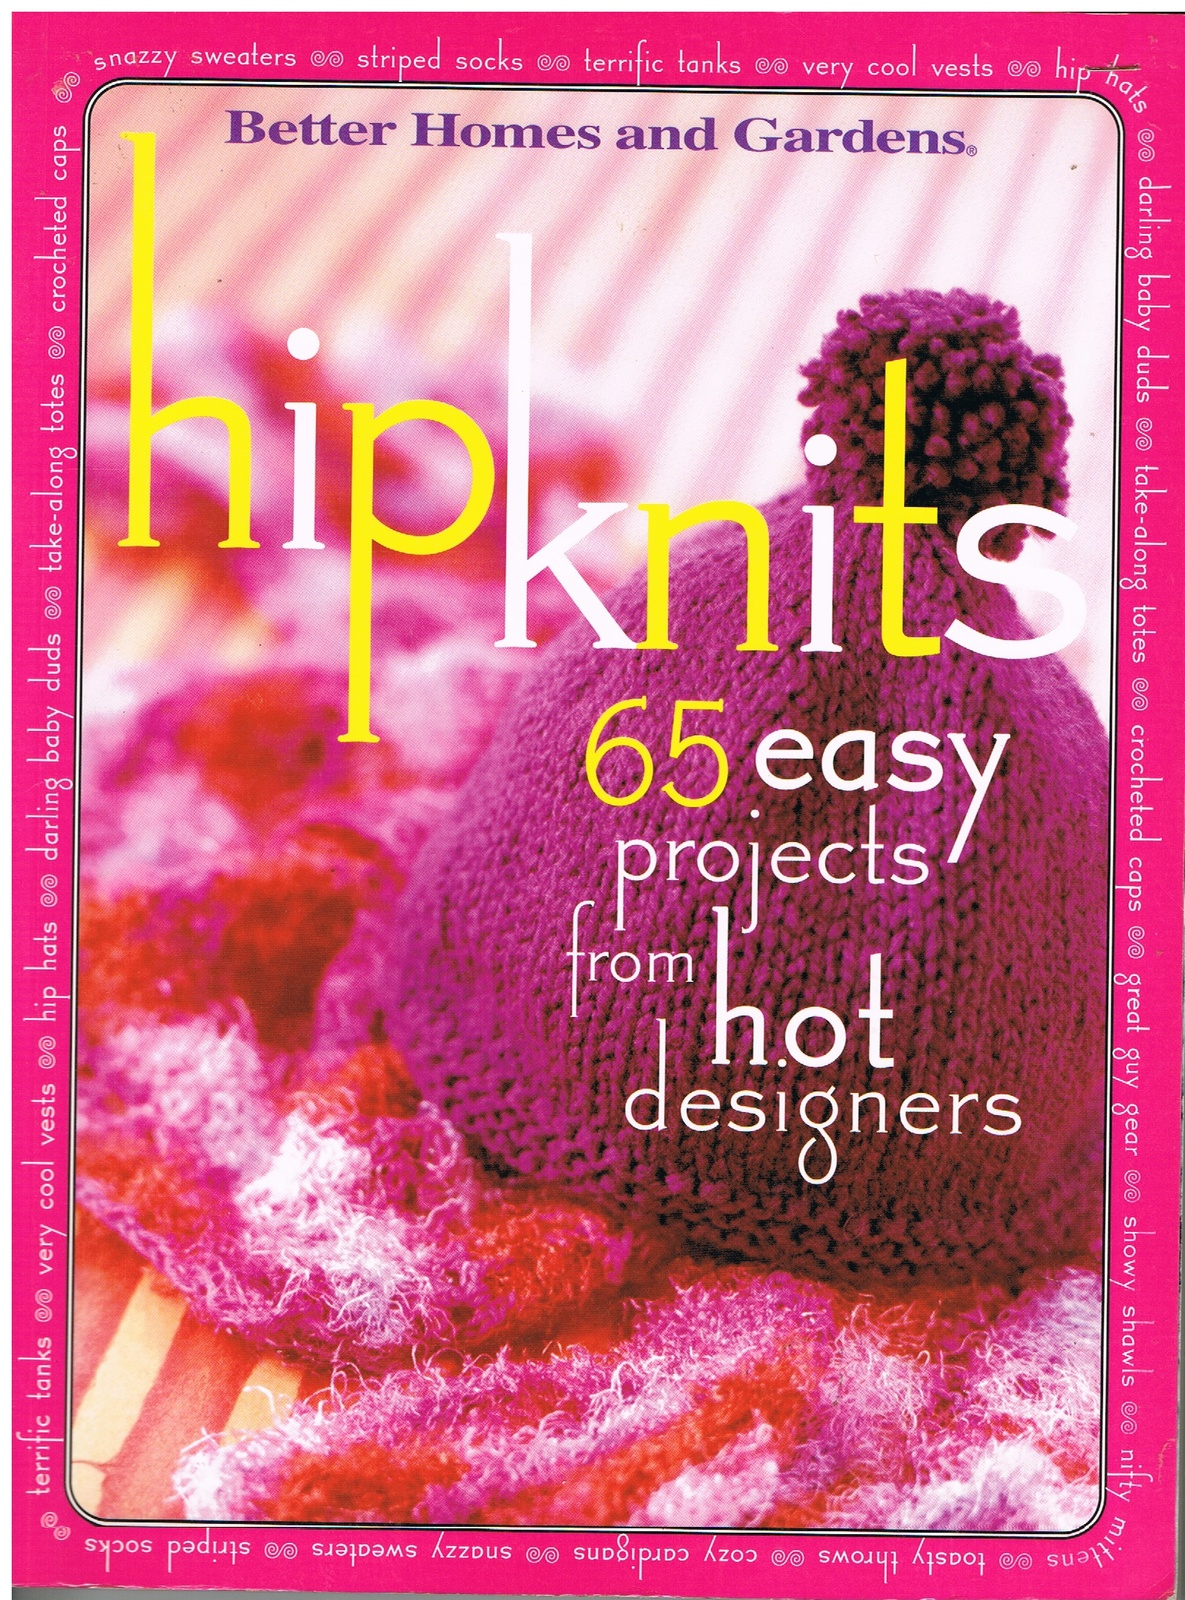 Better Homes and Gardens Hip Knits 65 Easy Projects from Hot Designers Book